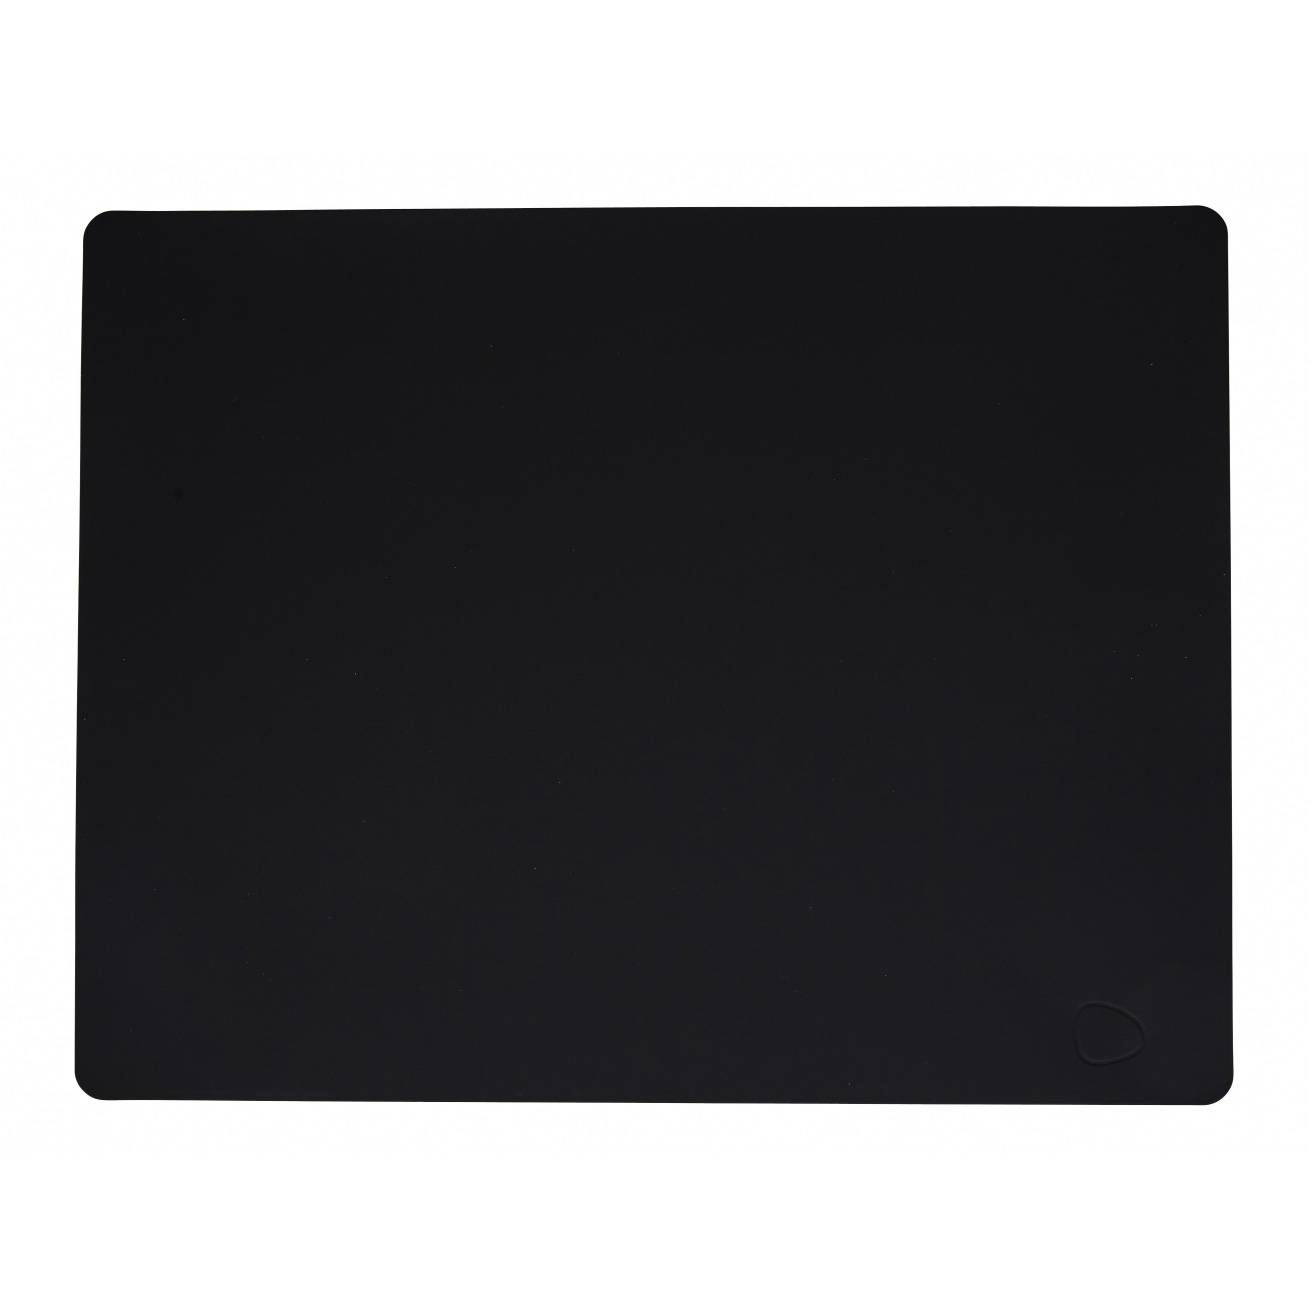 Lind DNA Square Pöytätabletti L, Softbuck Black